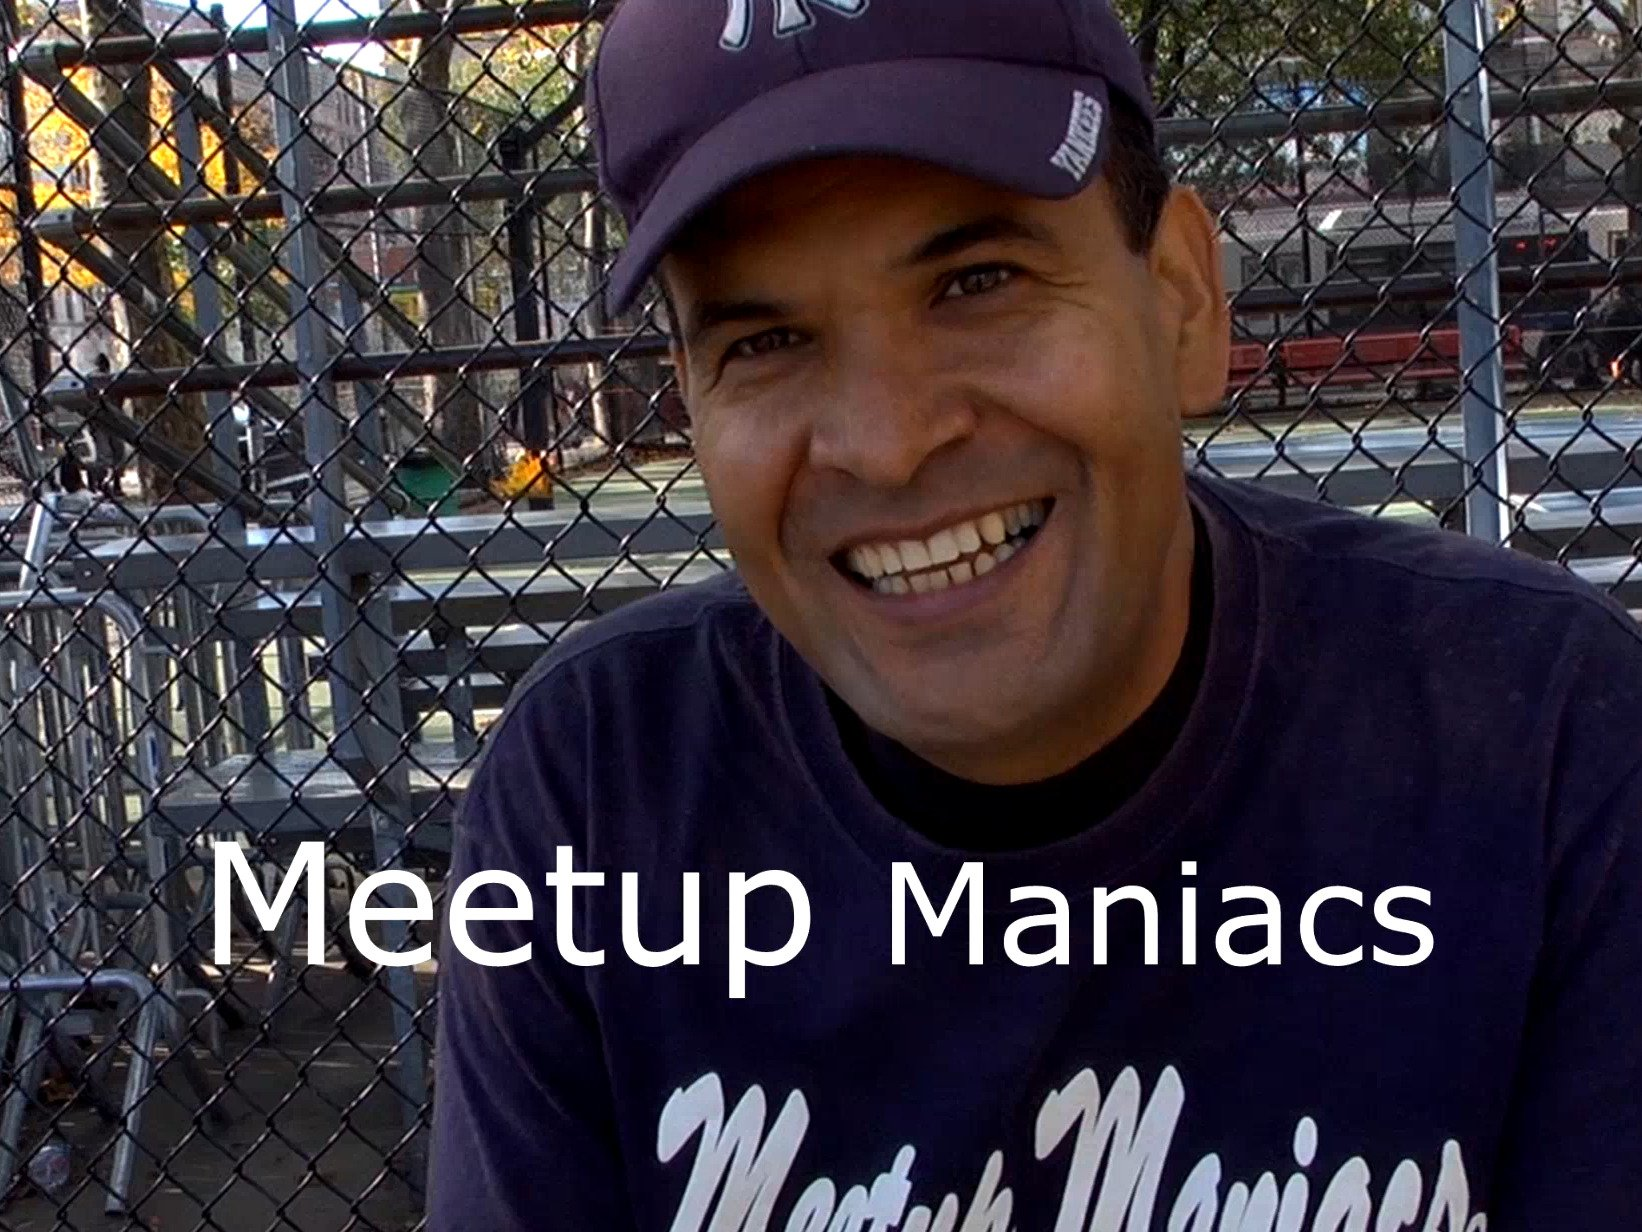 Clip: The Meetup Maniacs - Season 1